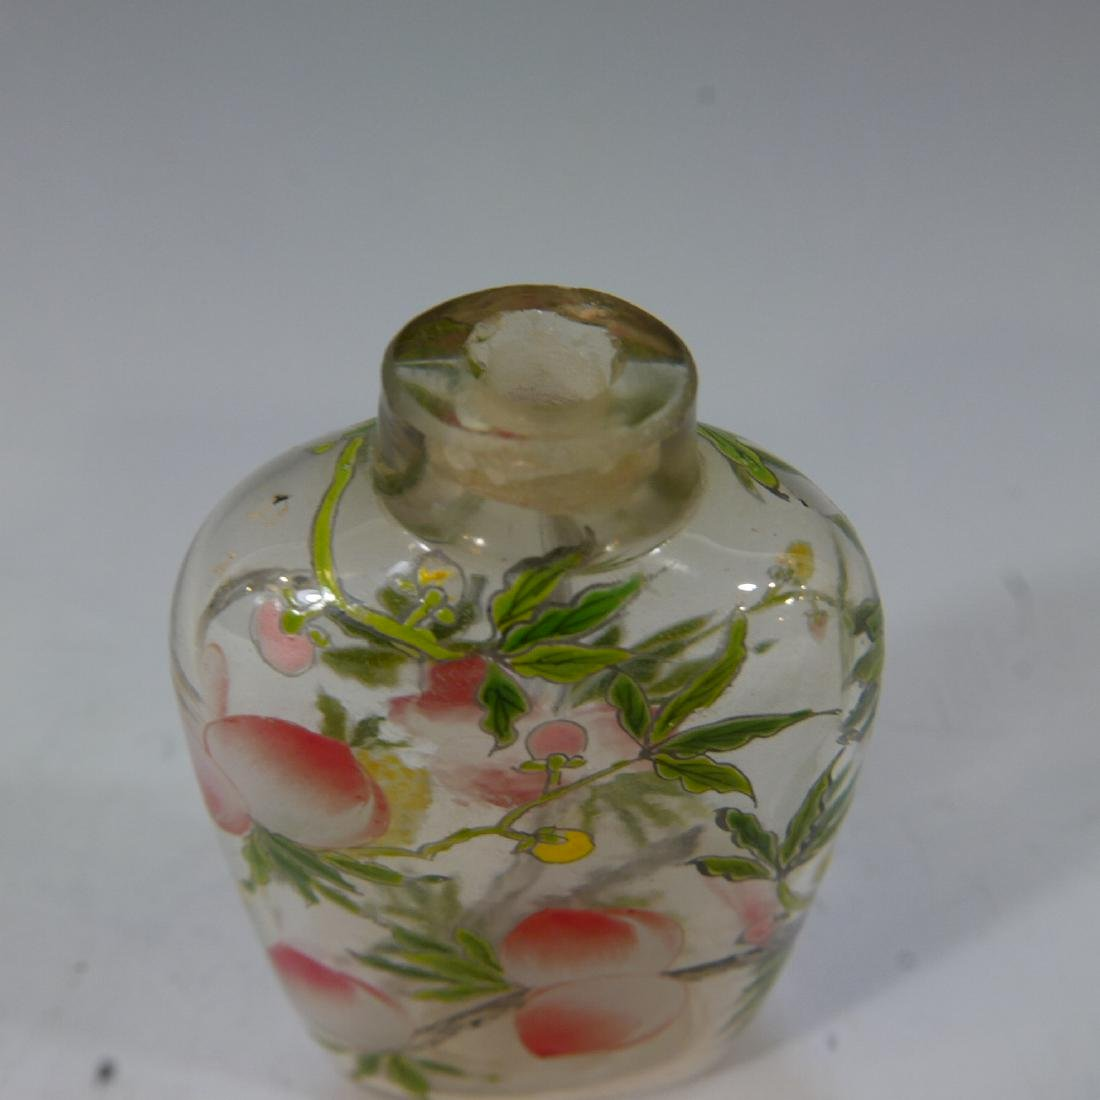 ANTIQUE ROCK CRYSTAL ENAMELED SNUFF BOTTLE - 3